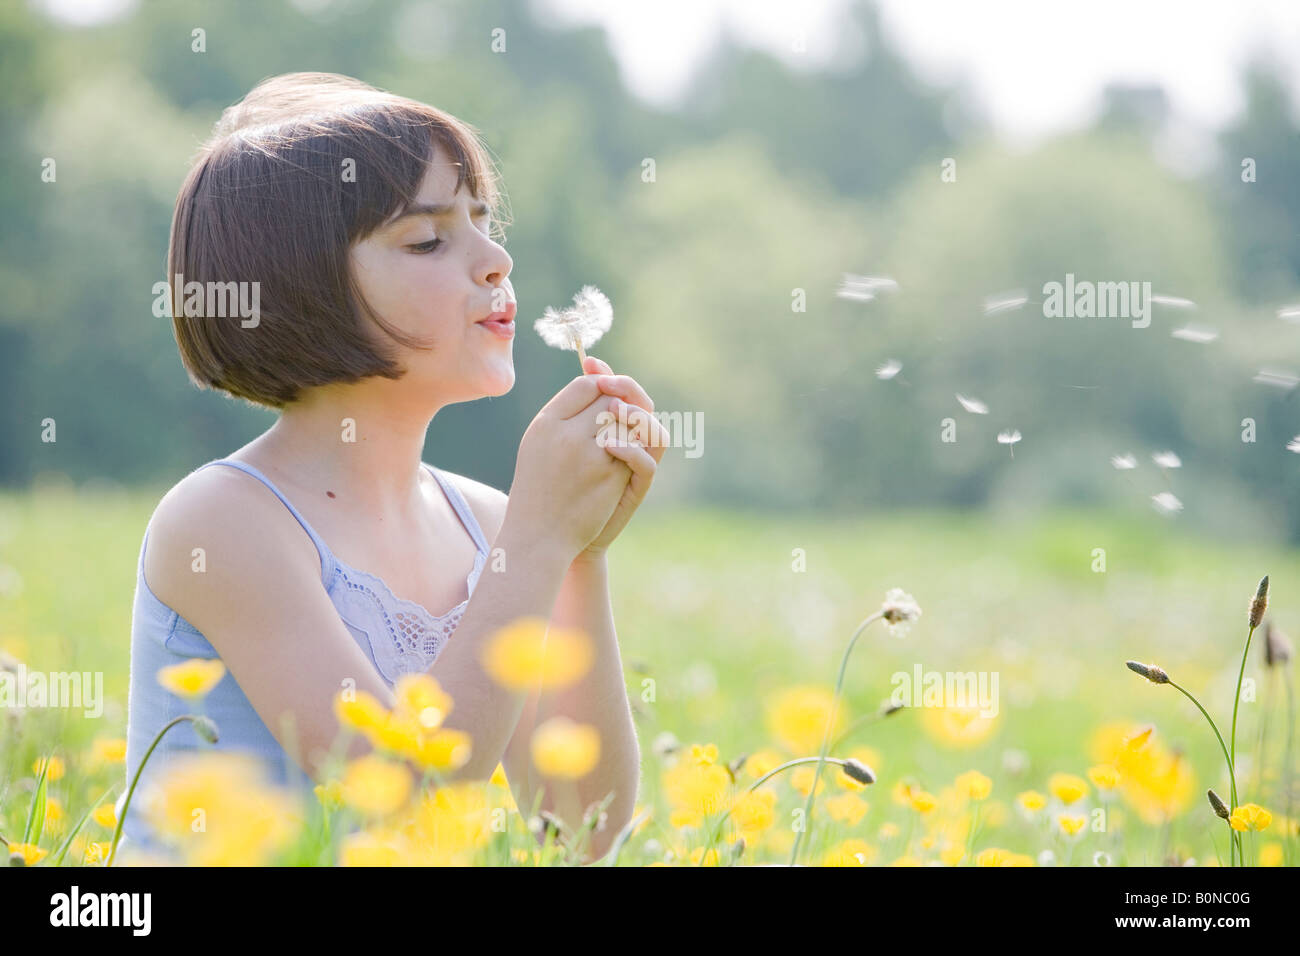 young female child sitting in field of buttercups blowing a dandelion with room for copy - Stock Image